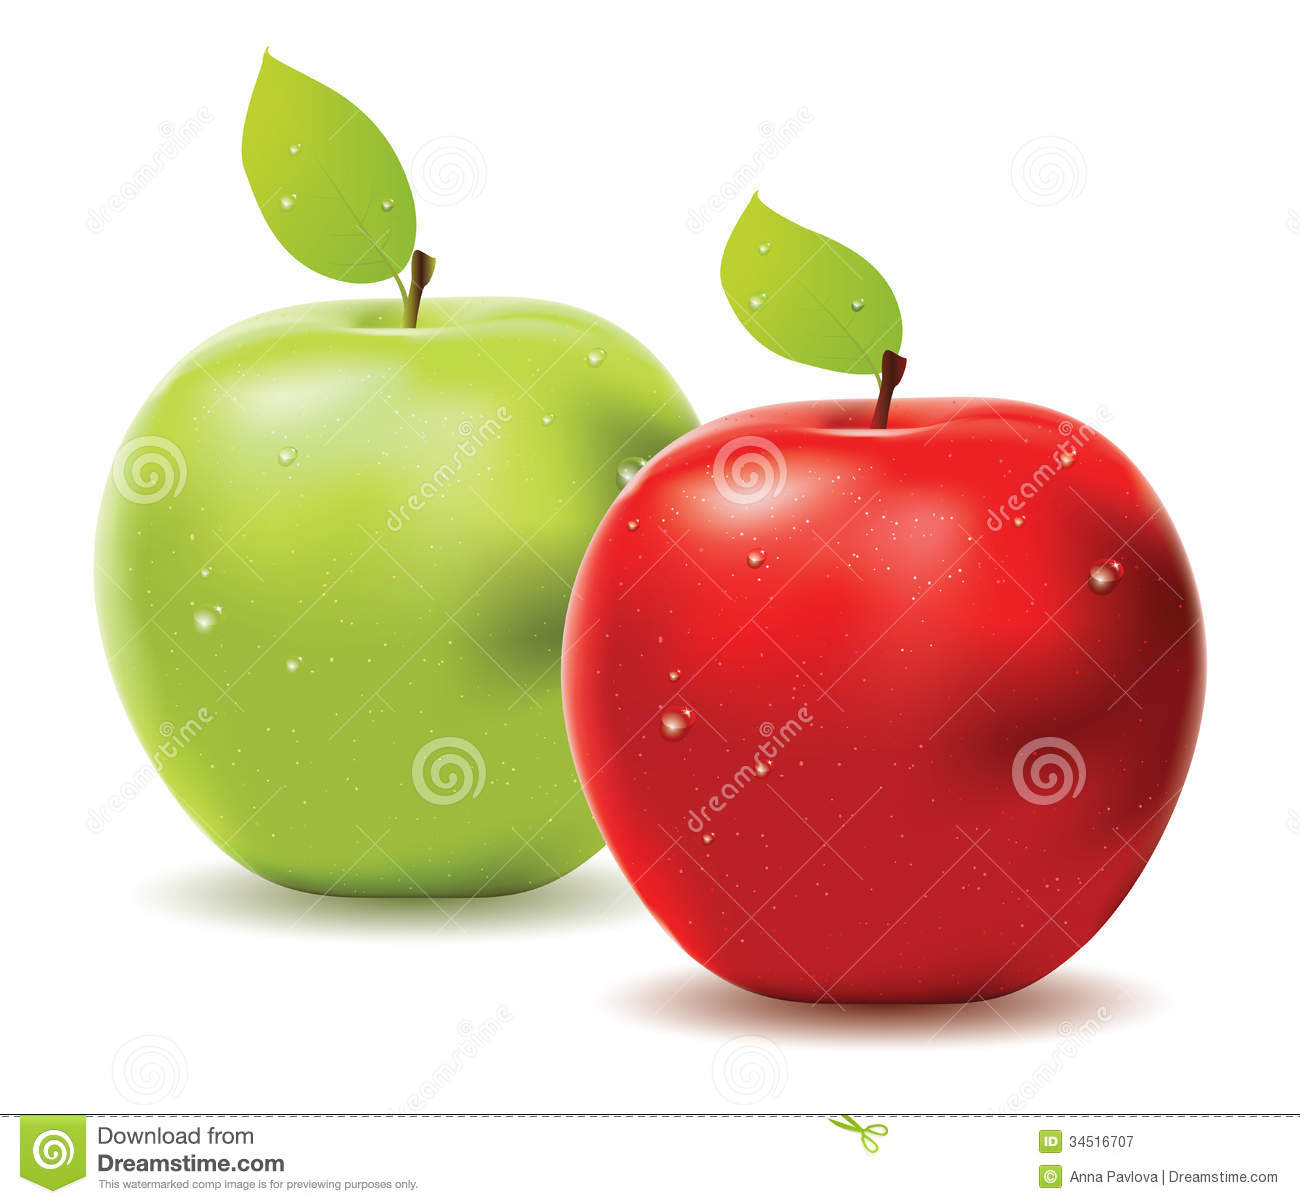 green and red apples. royalty-free stock photo. download green apple and red apples